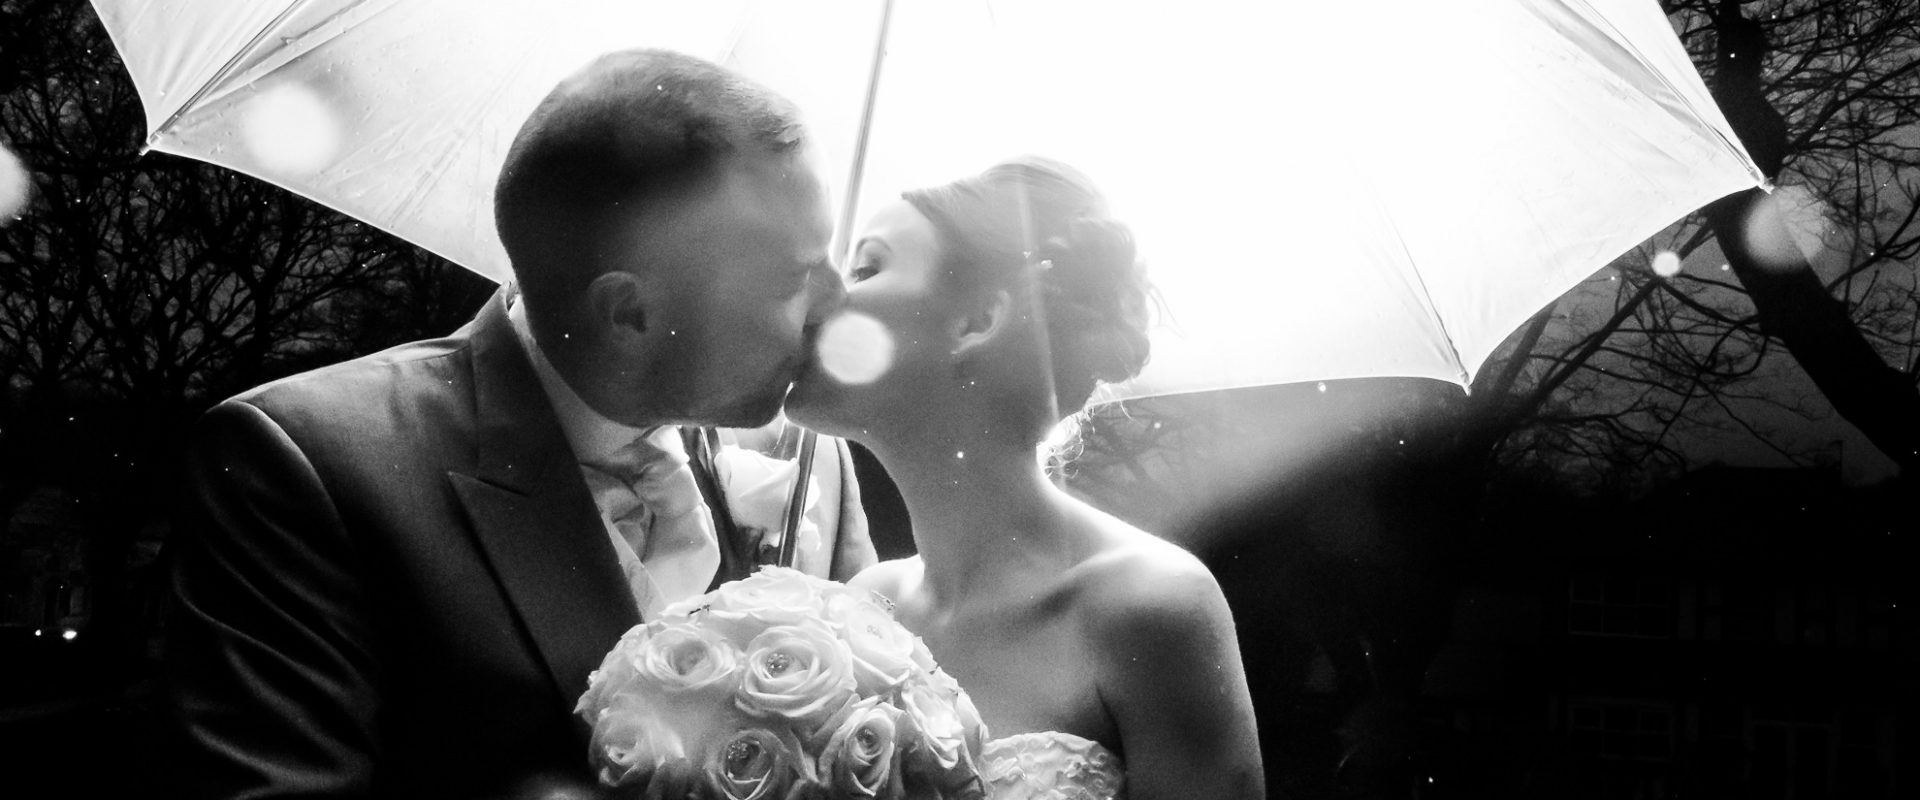 black and white shot of bride and groom kissing under a backlit umbrella in the rain